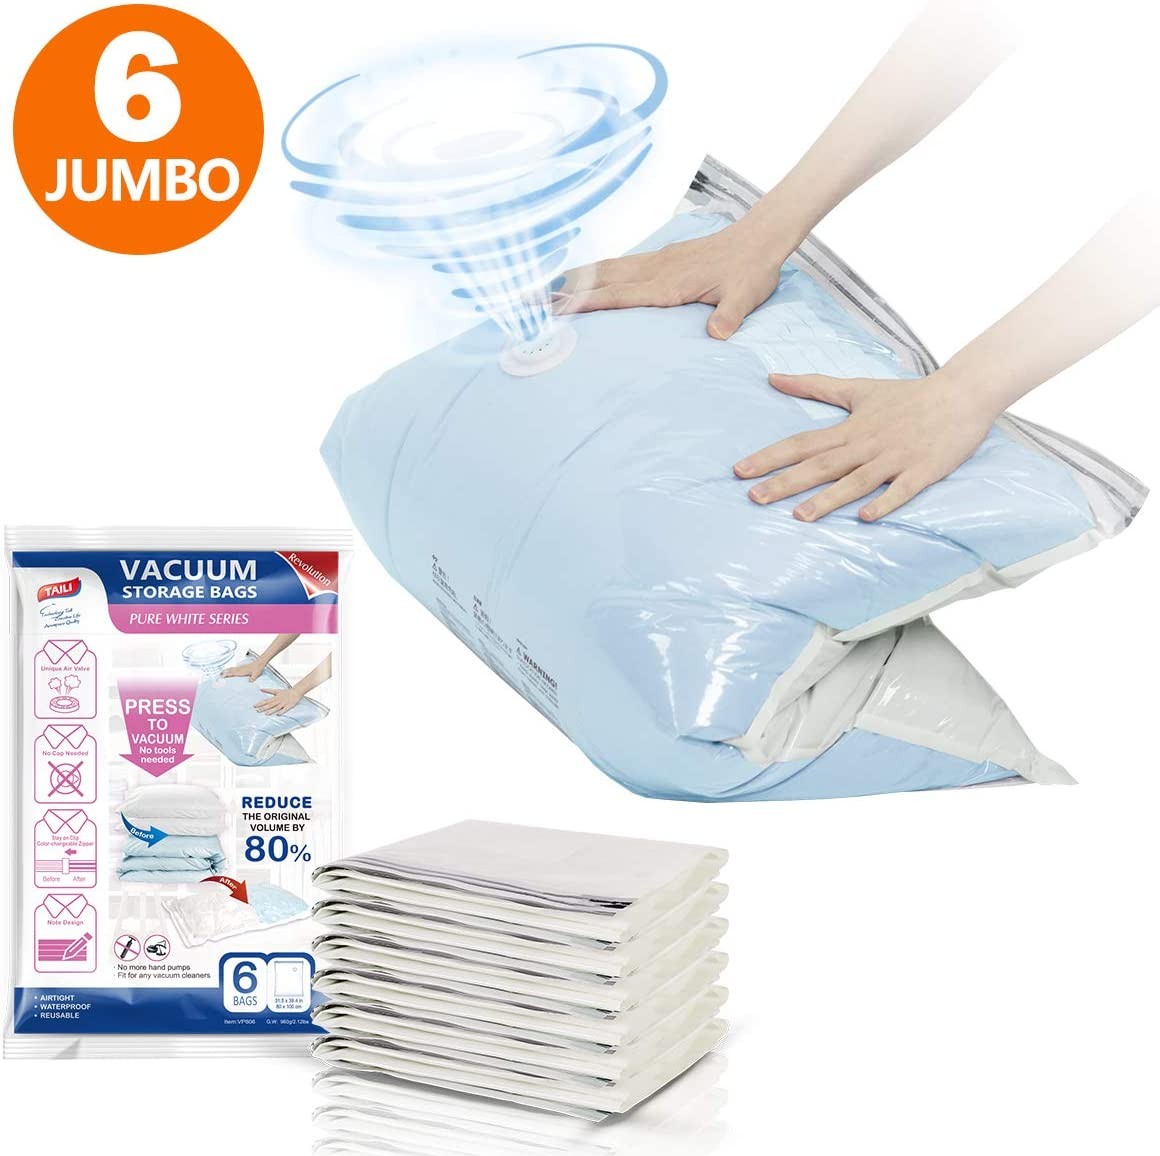 Jumbo Space Saver Vacuum Storage Bags 6 Pack No Pump No Cap Hand-Press Design, Sealer Vacuum Compressed Bags for Large Duvets Quilts Comforters Beddings Pillows and Travel